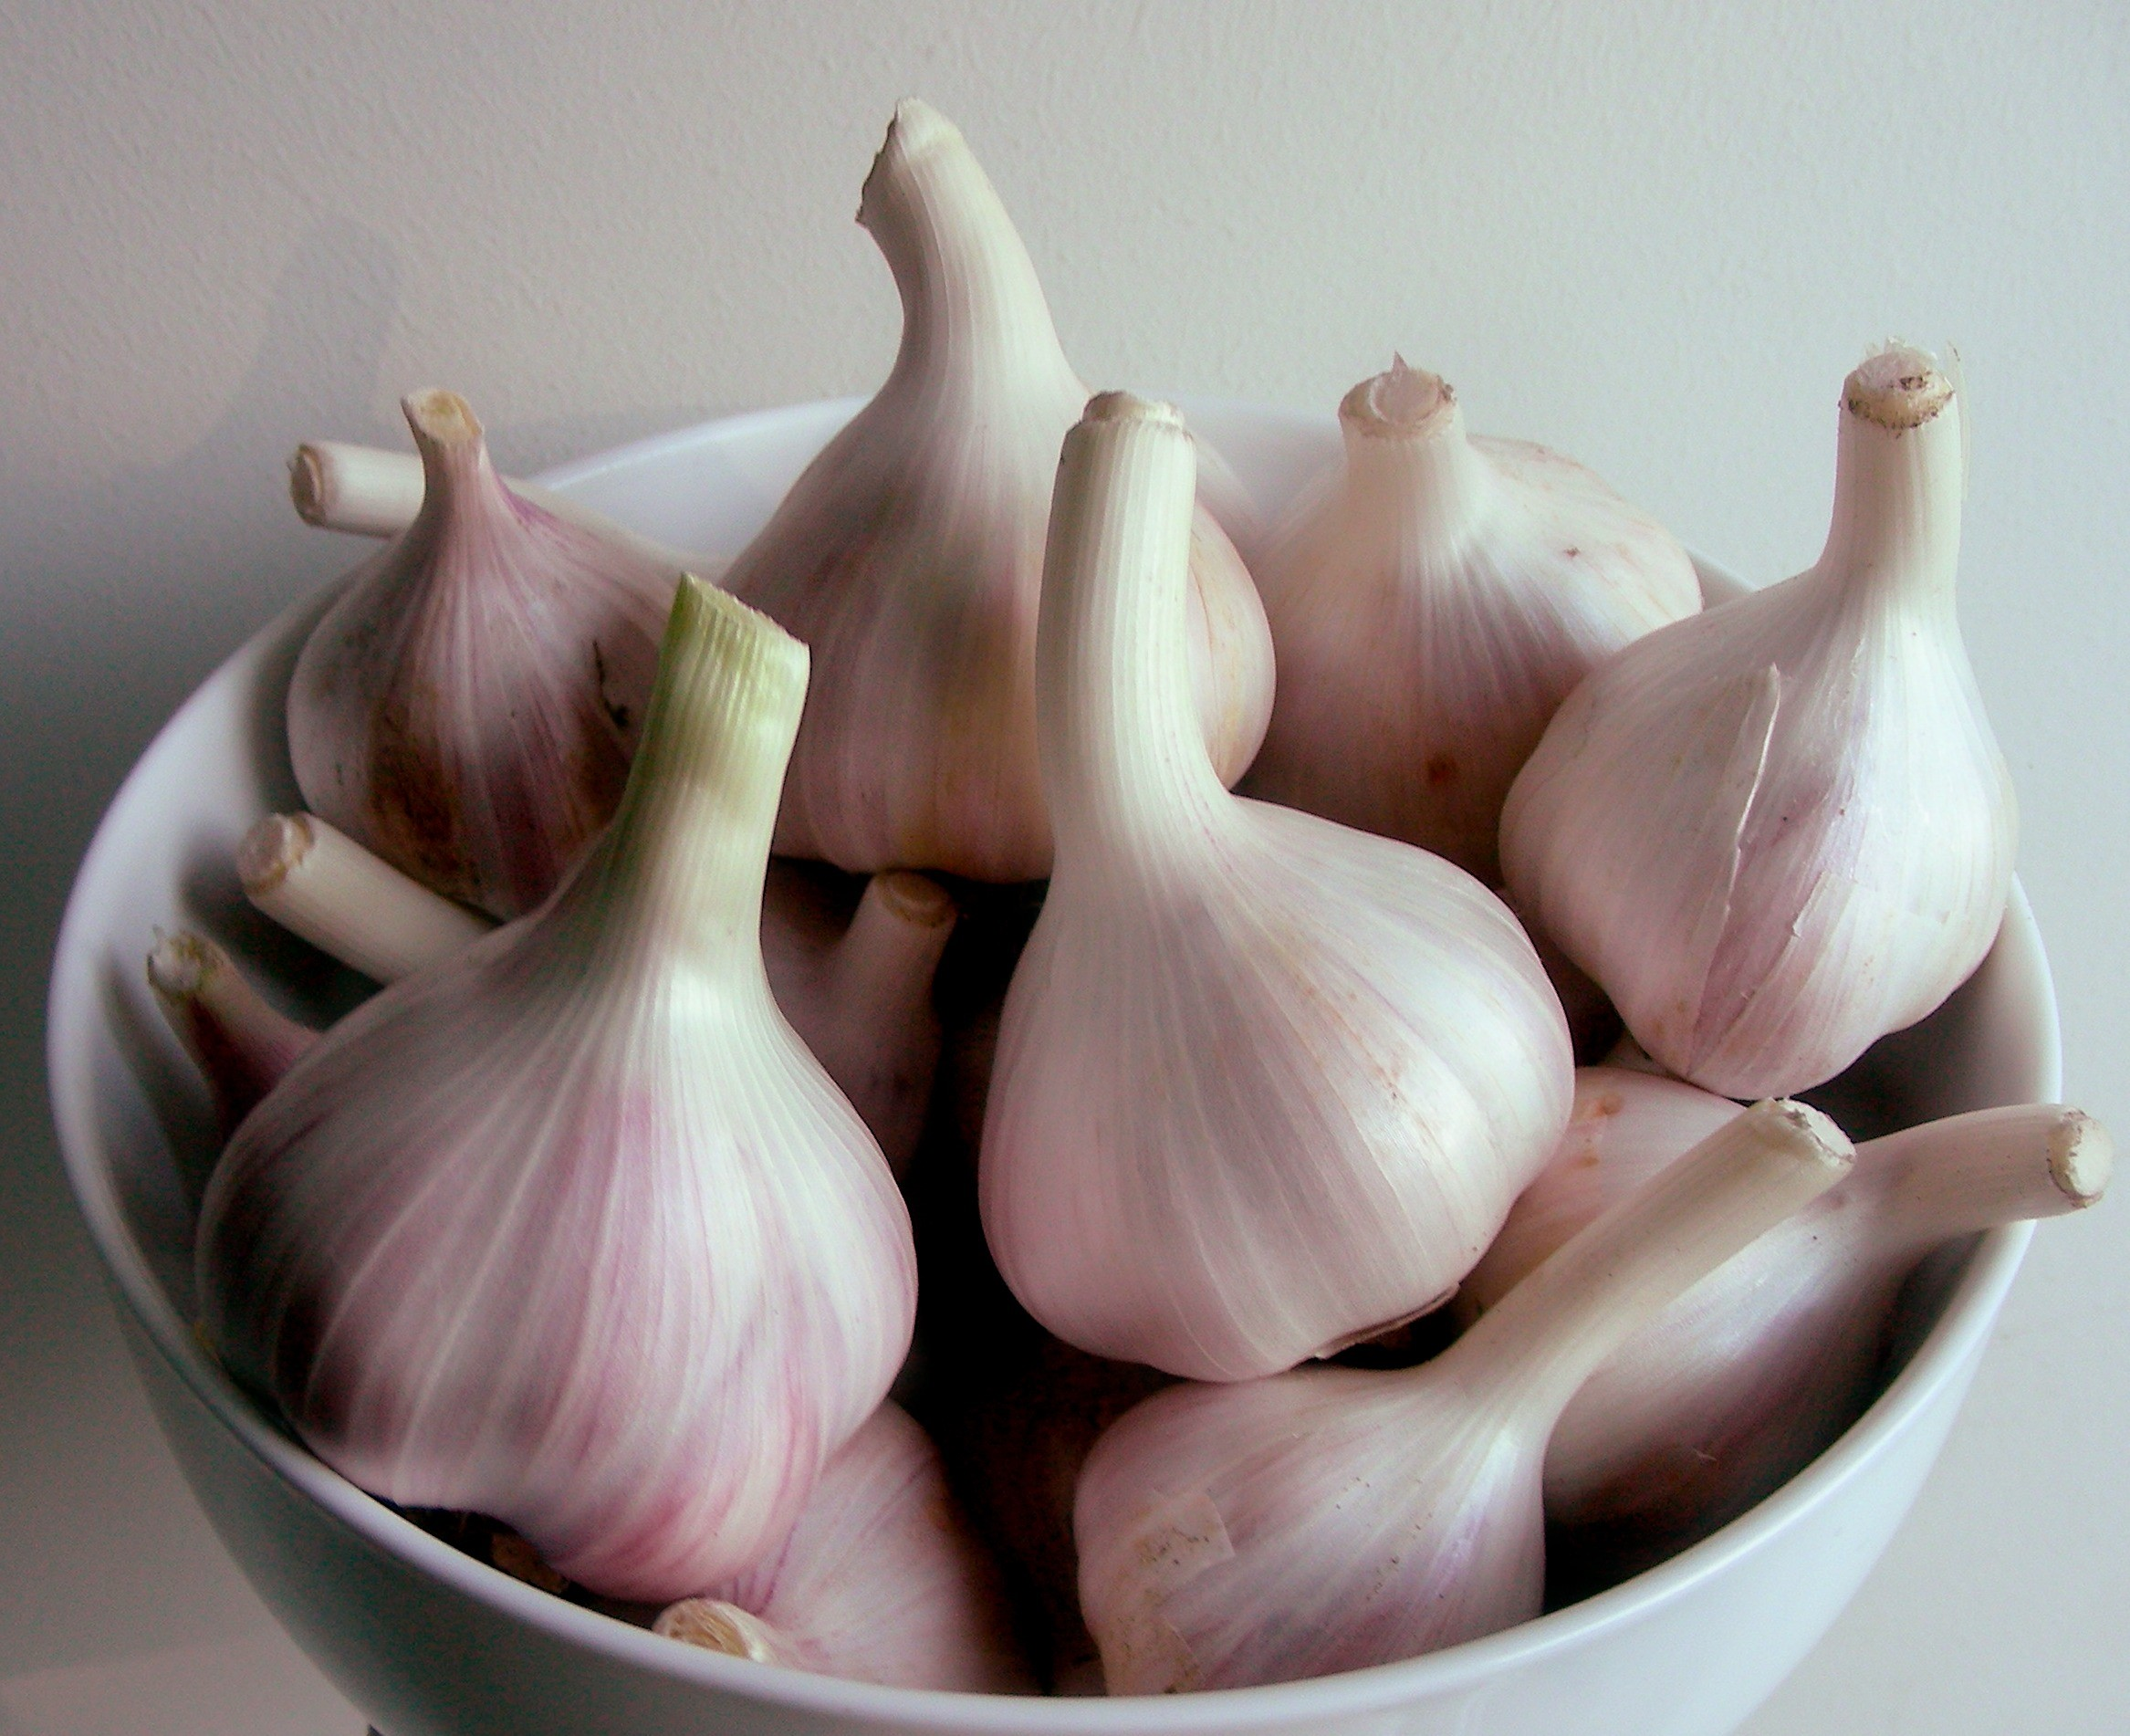 Garlic Bulbs.